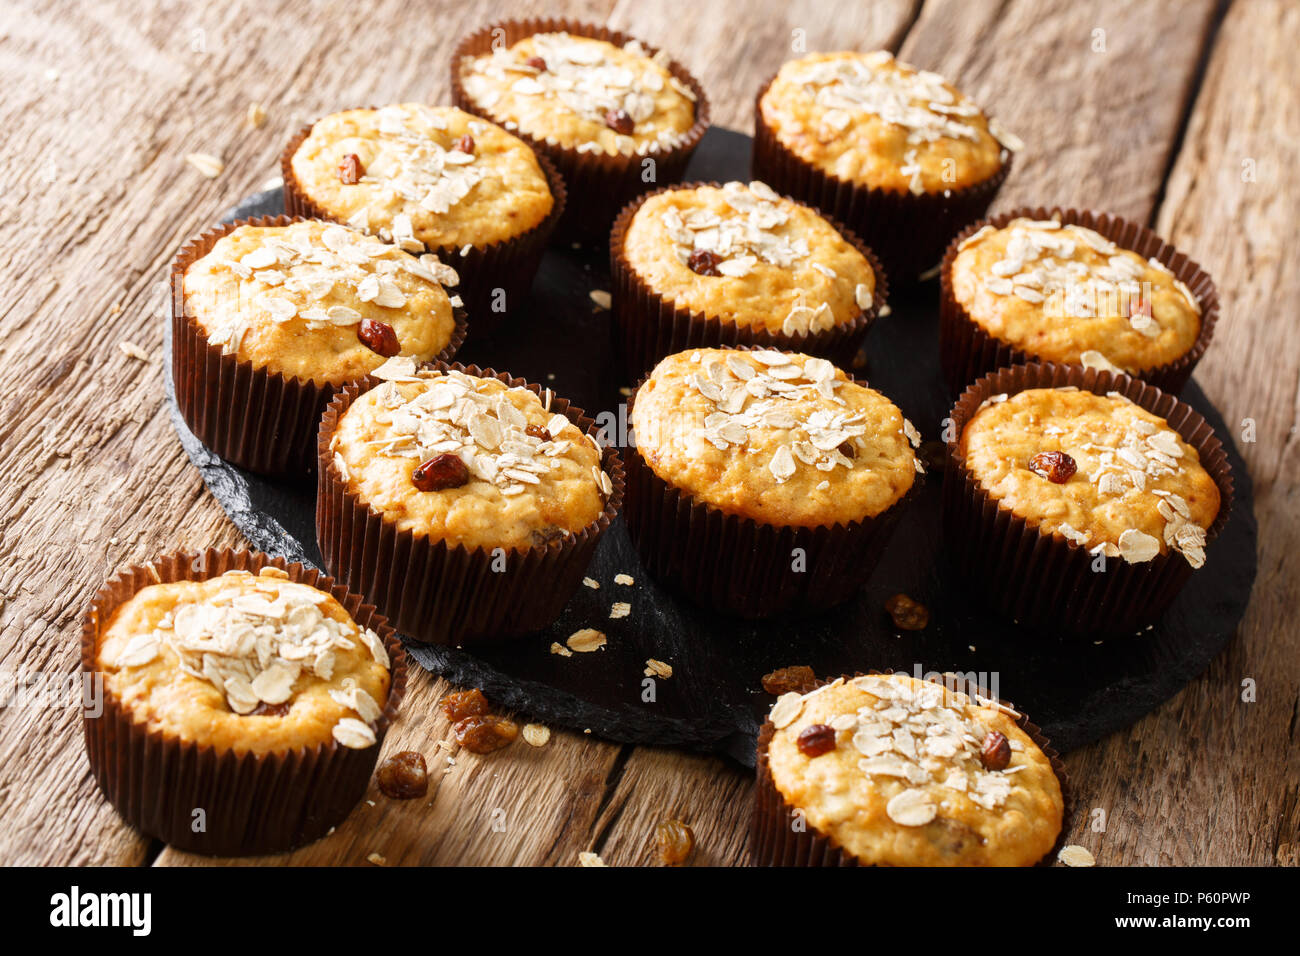 Low-calorie muffins of oatmeal with raisins and honey close-up on the table. horizontal - Stock Image